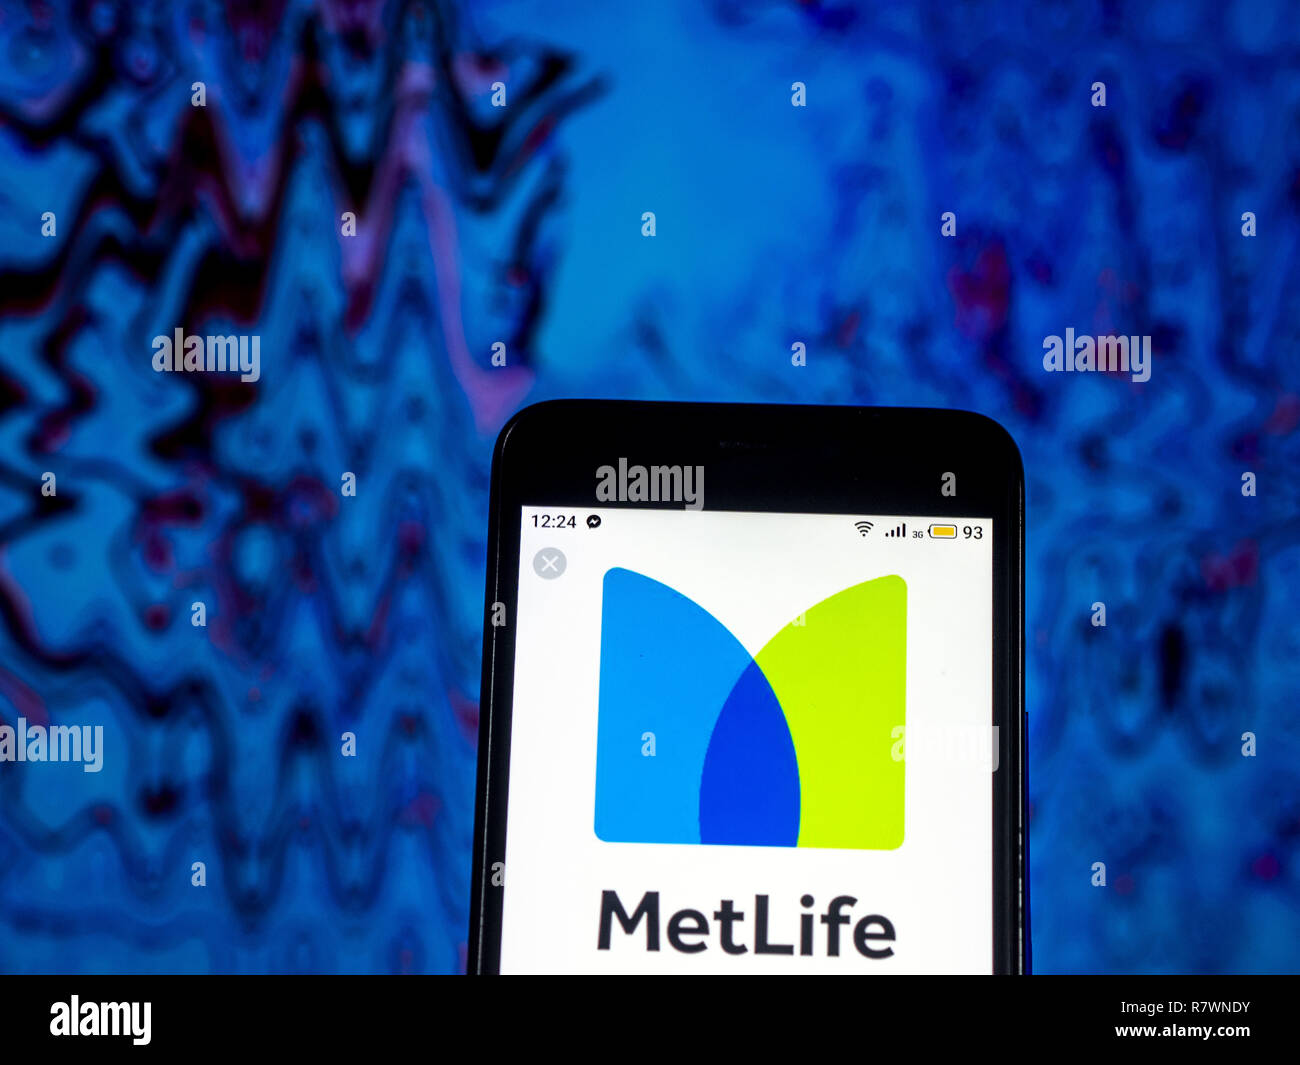 Kiev, Ukraine. 11th Dec, 2018. MetLife Life insurance company logo seen displayed on smart phone. Credit: Igor Golovniov/SOPA Images/ZUMA Wire/Alamy Live News - Stock Image